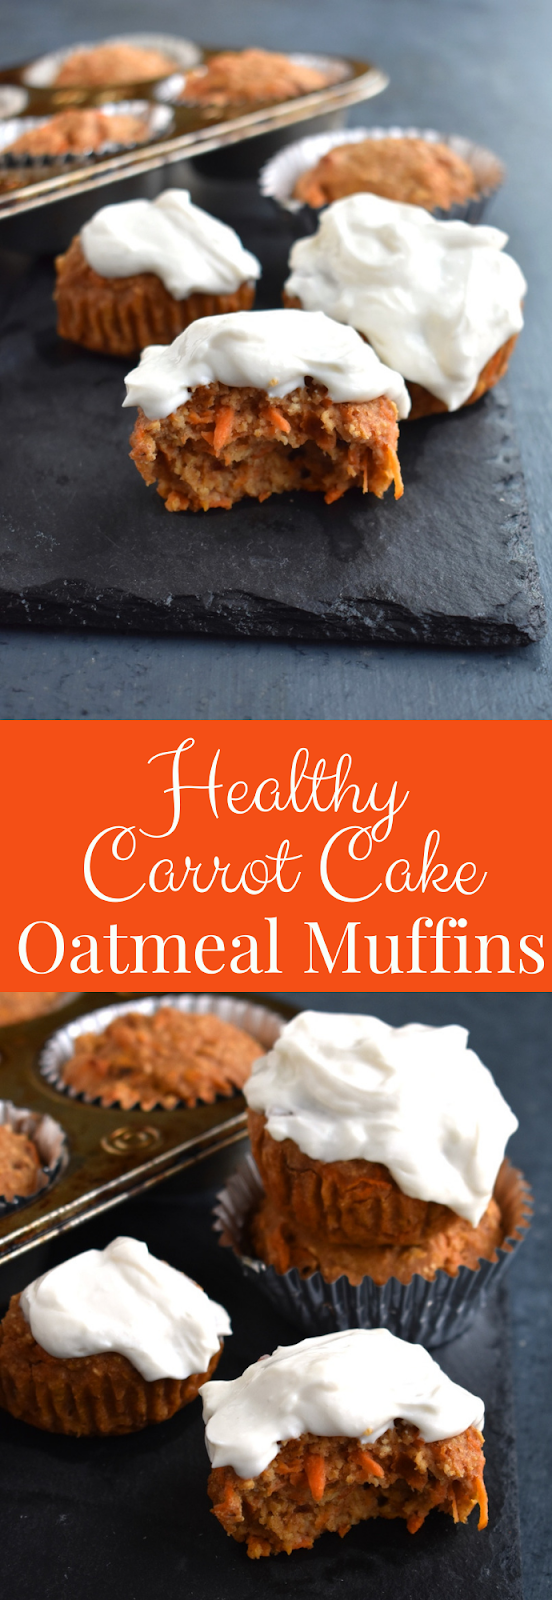 Carrot Cake Oatmeal Muffins The Nutritionist Reviews